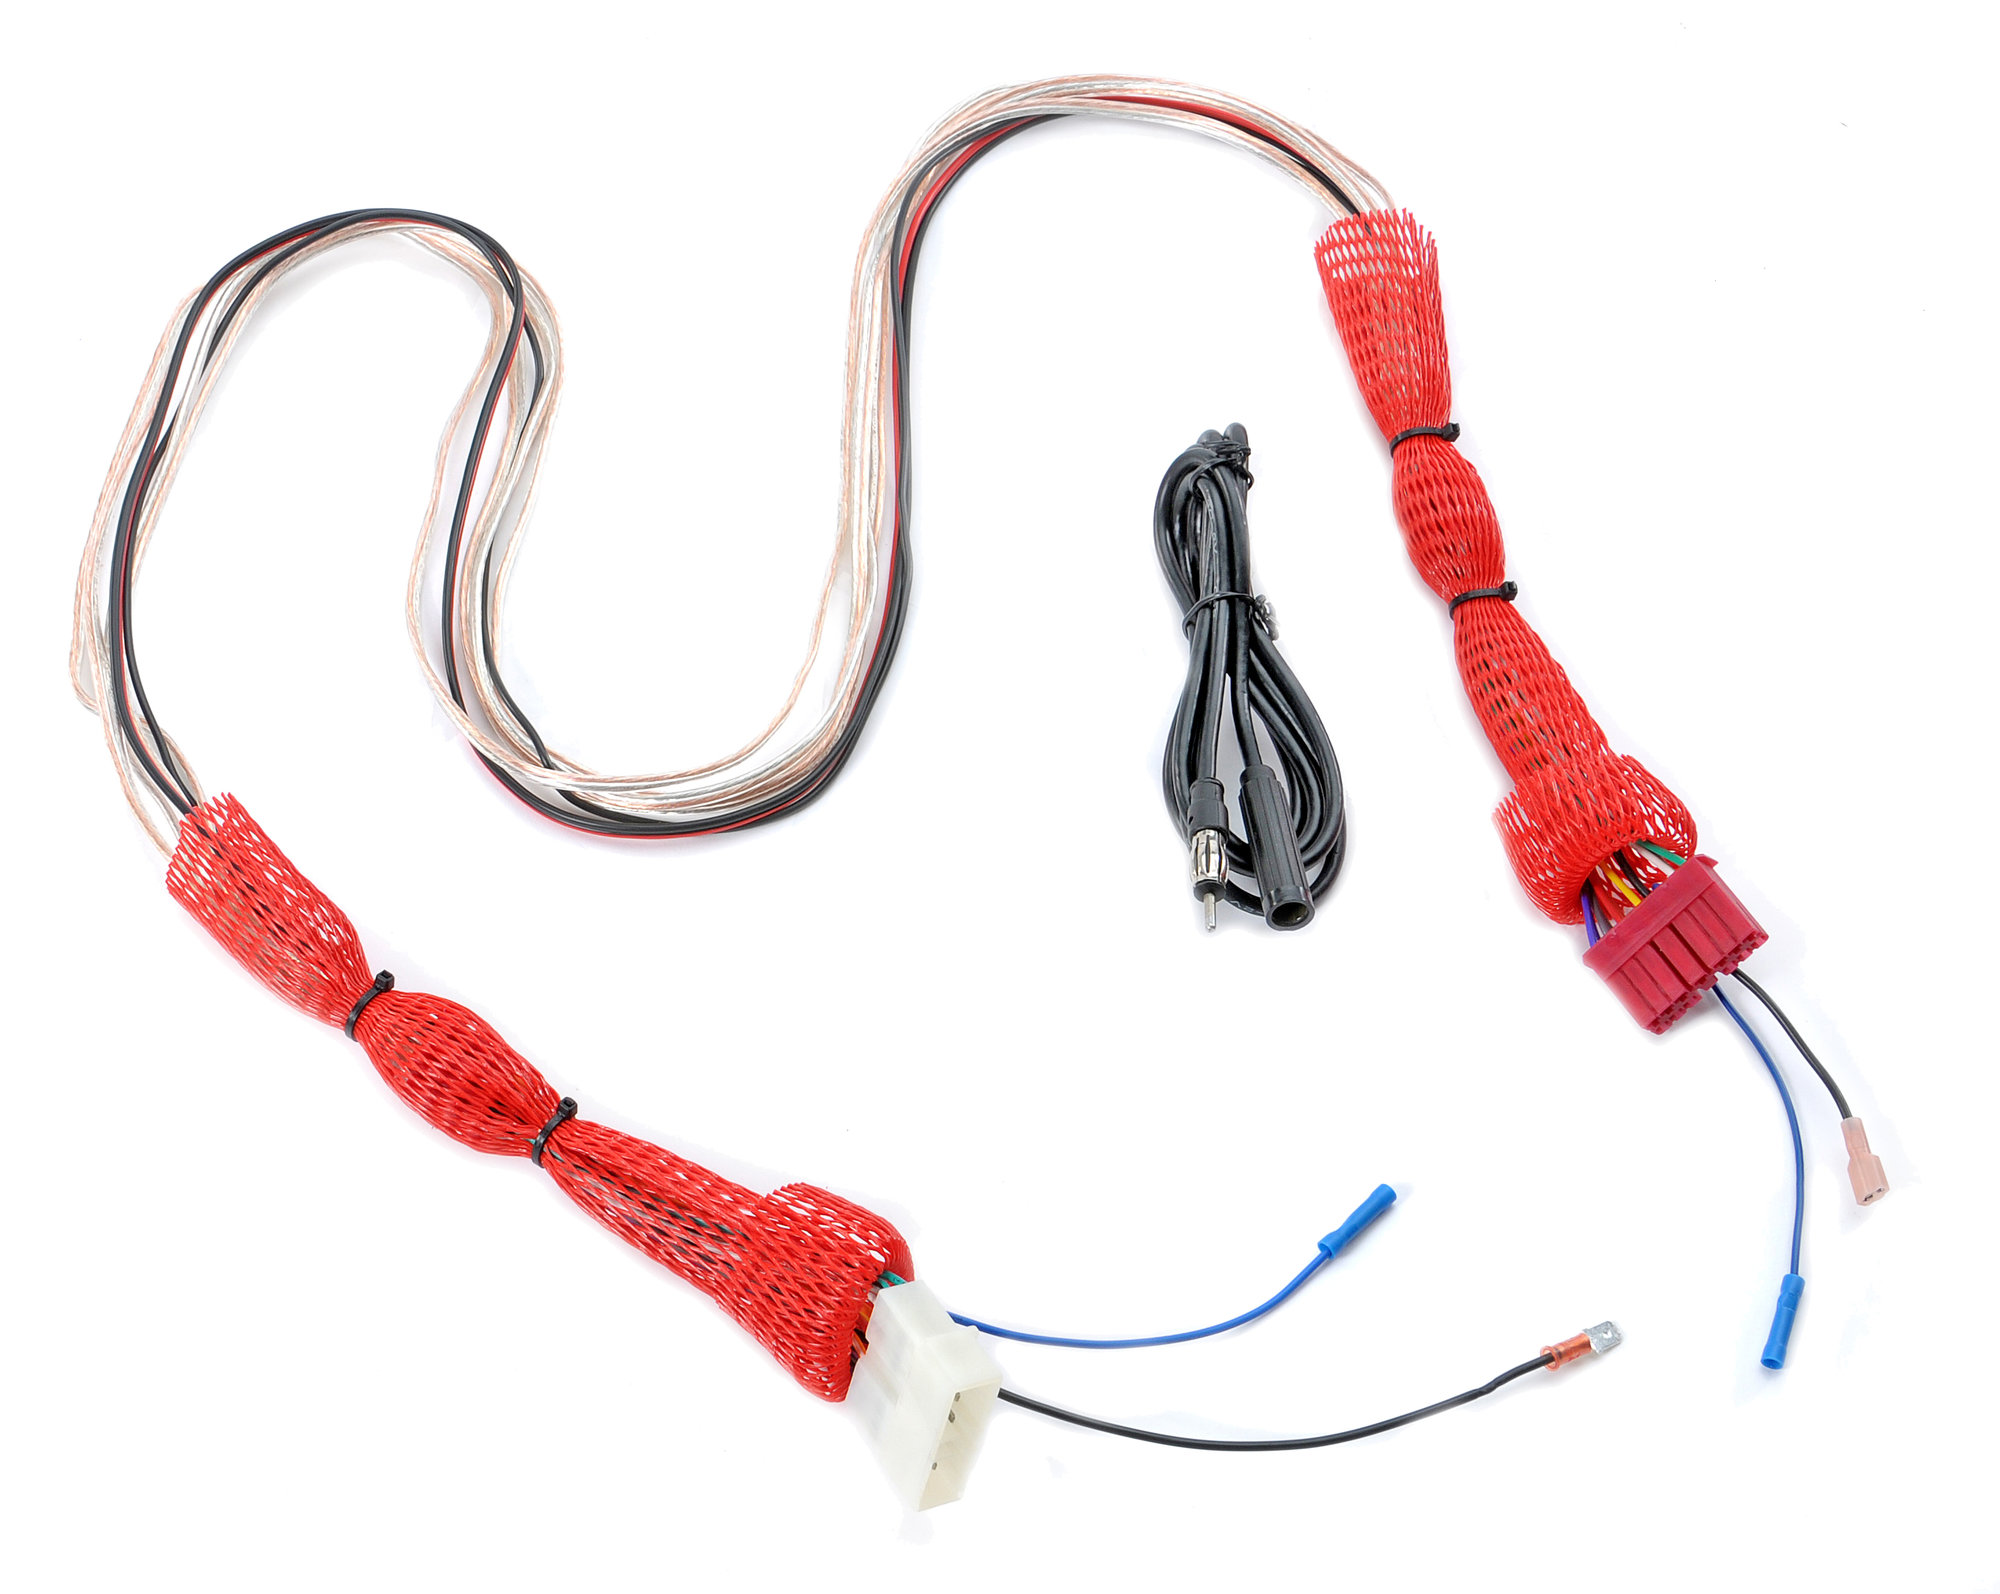 hight resolution of  wiring harness extension for 87 95 jeep wrangler yj with stereo console the quadratec difference